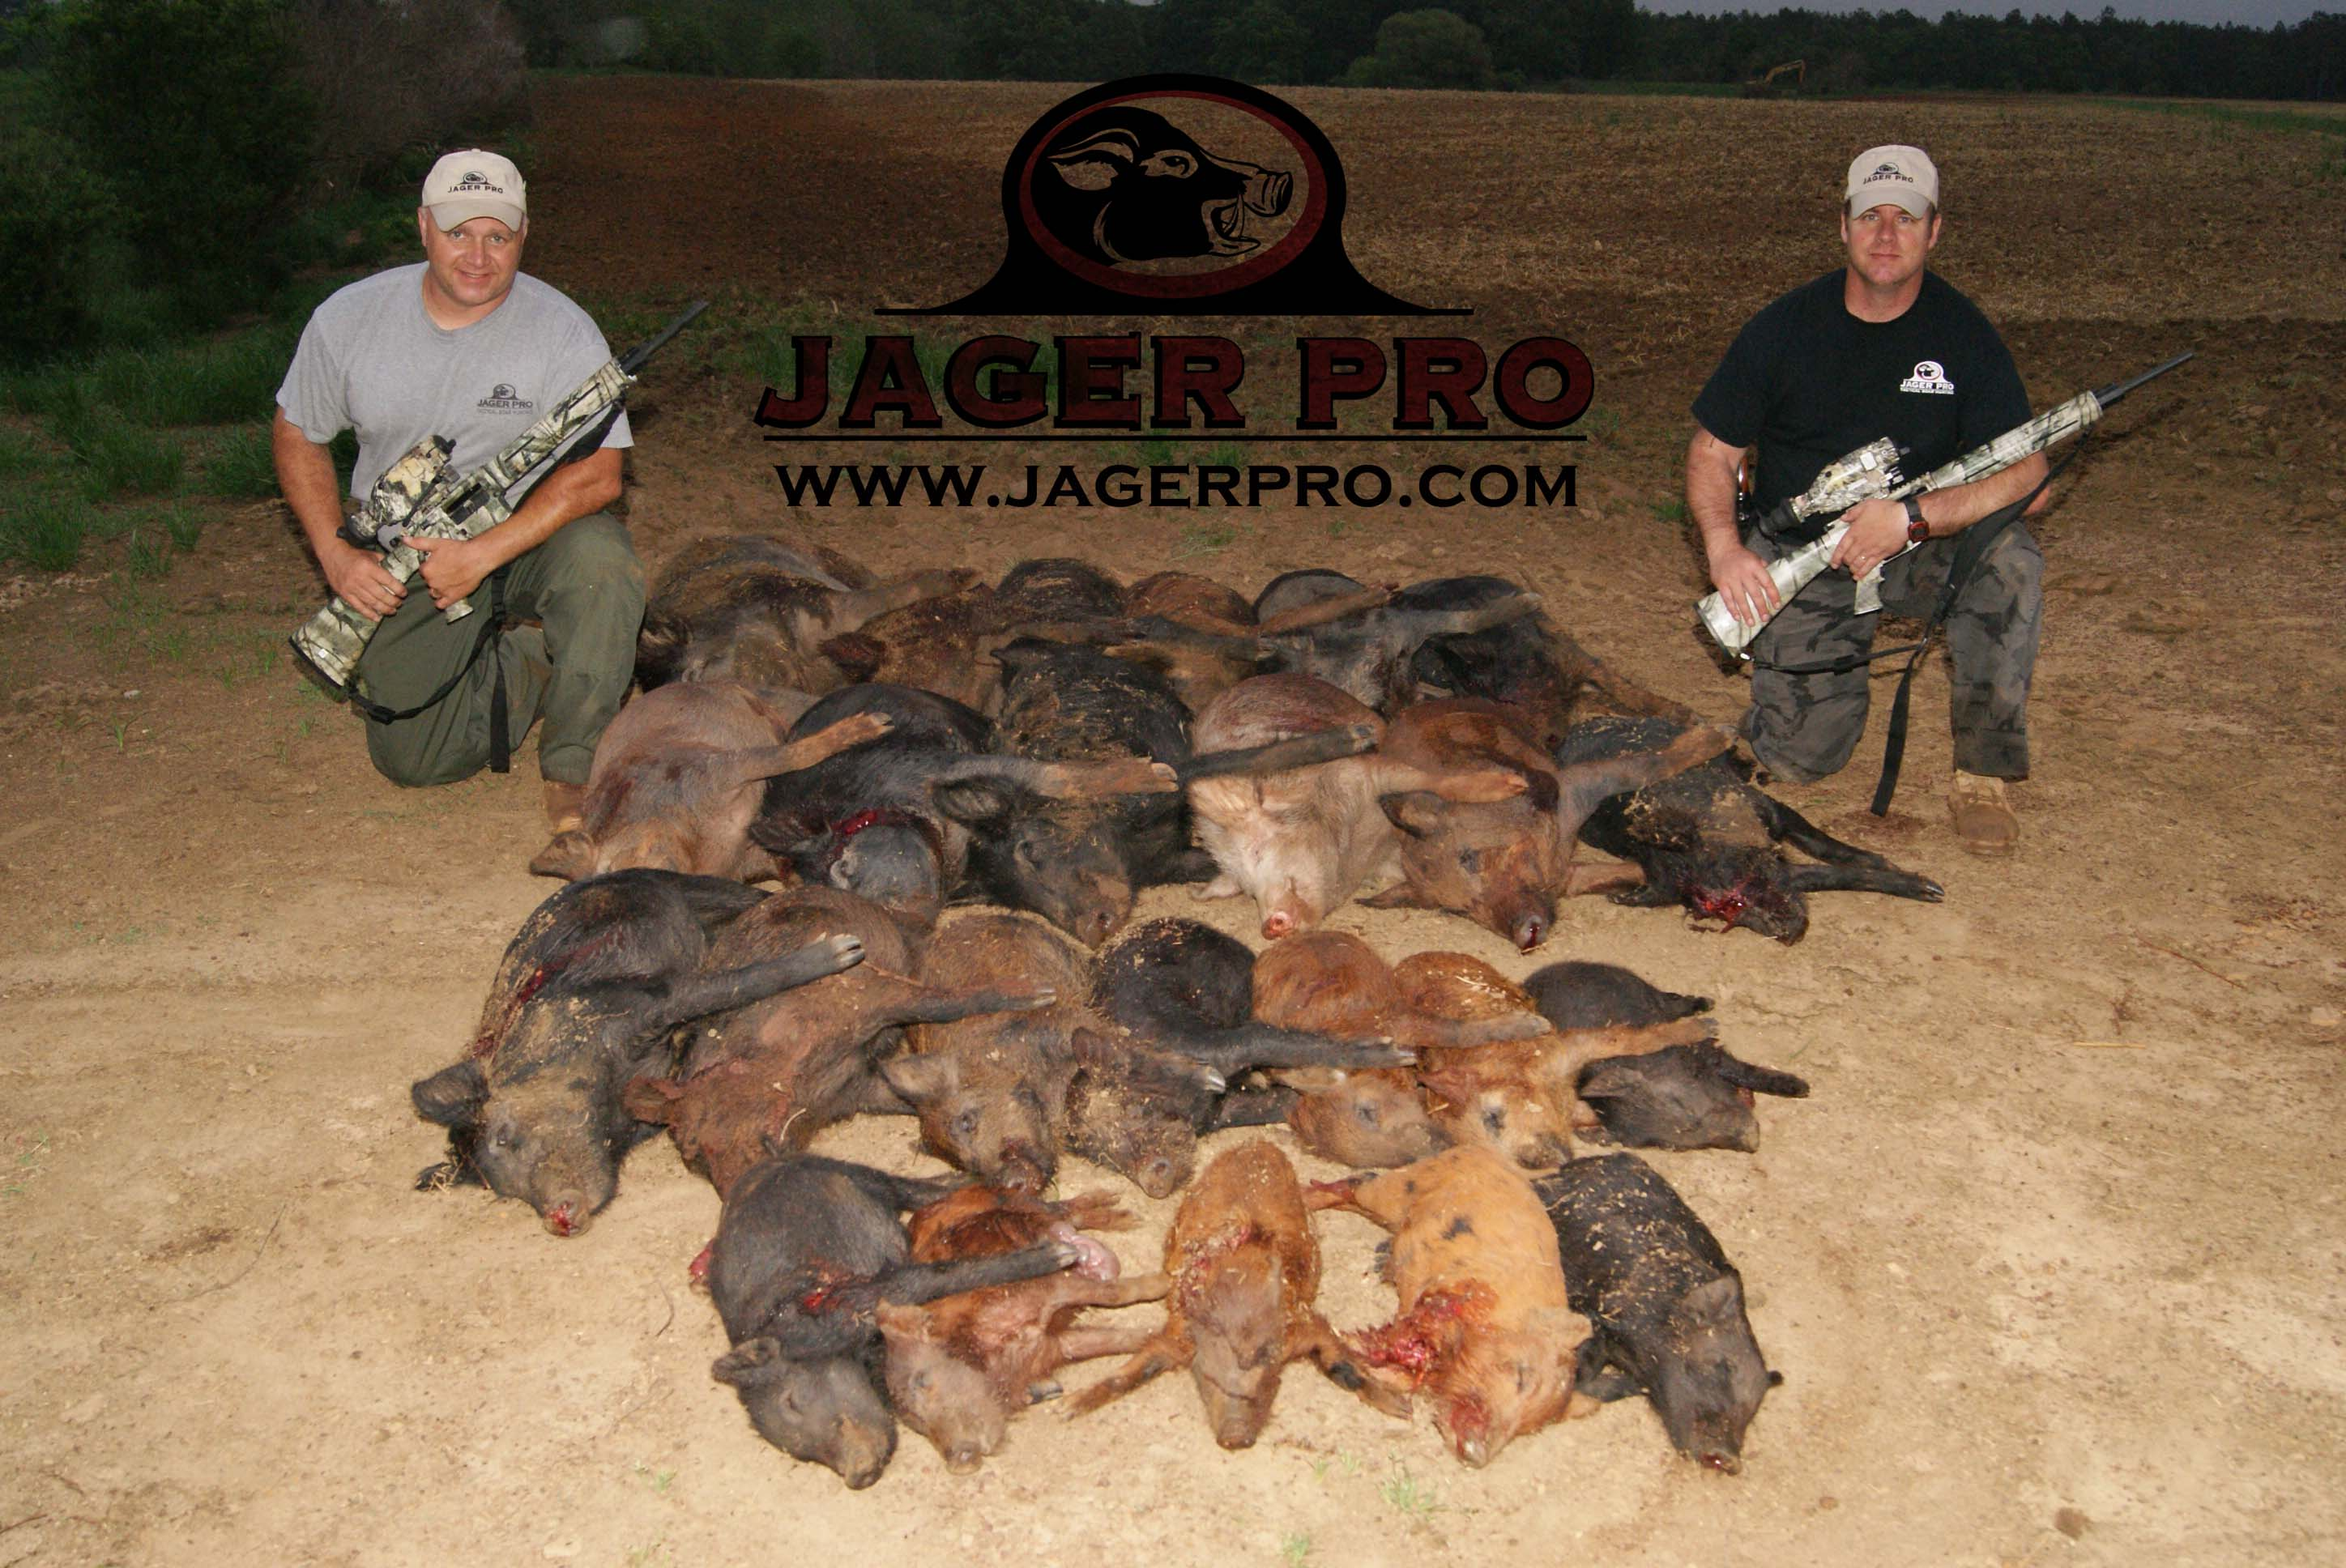 JAGER Pro's Clint Housel Hunts Feral Hogs with Thermal Night Vision Equipment